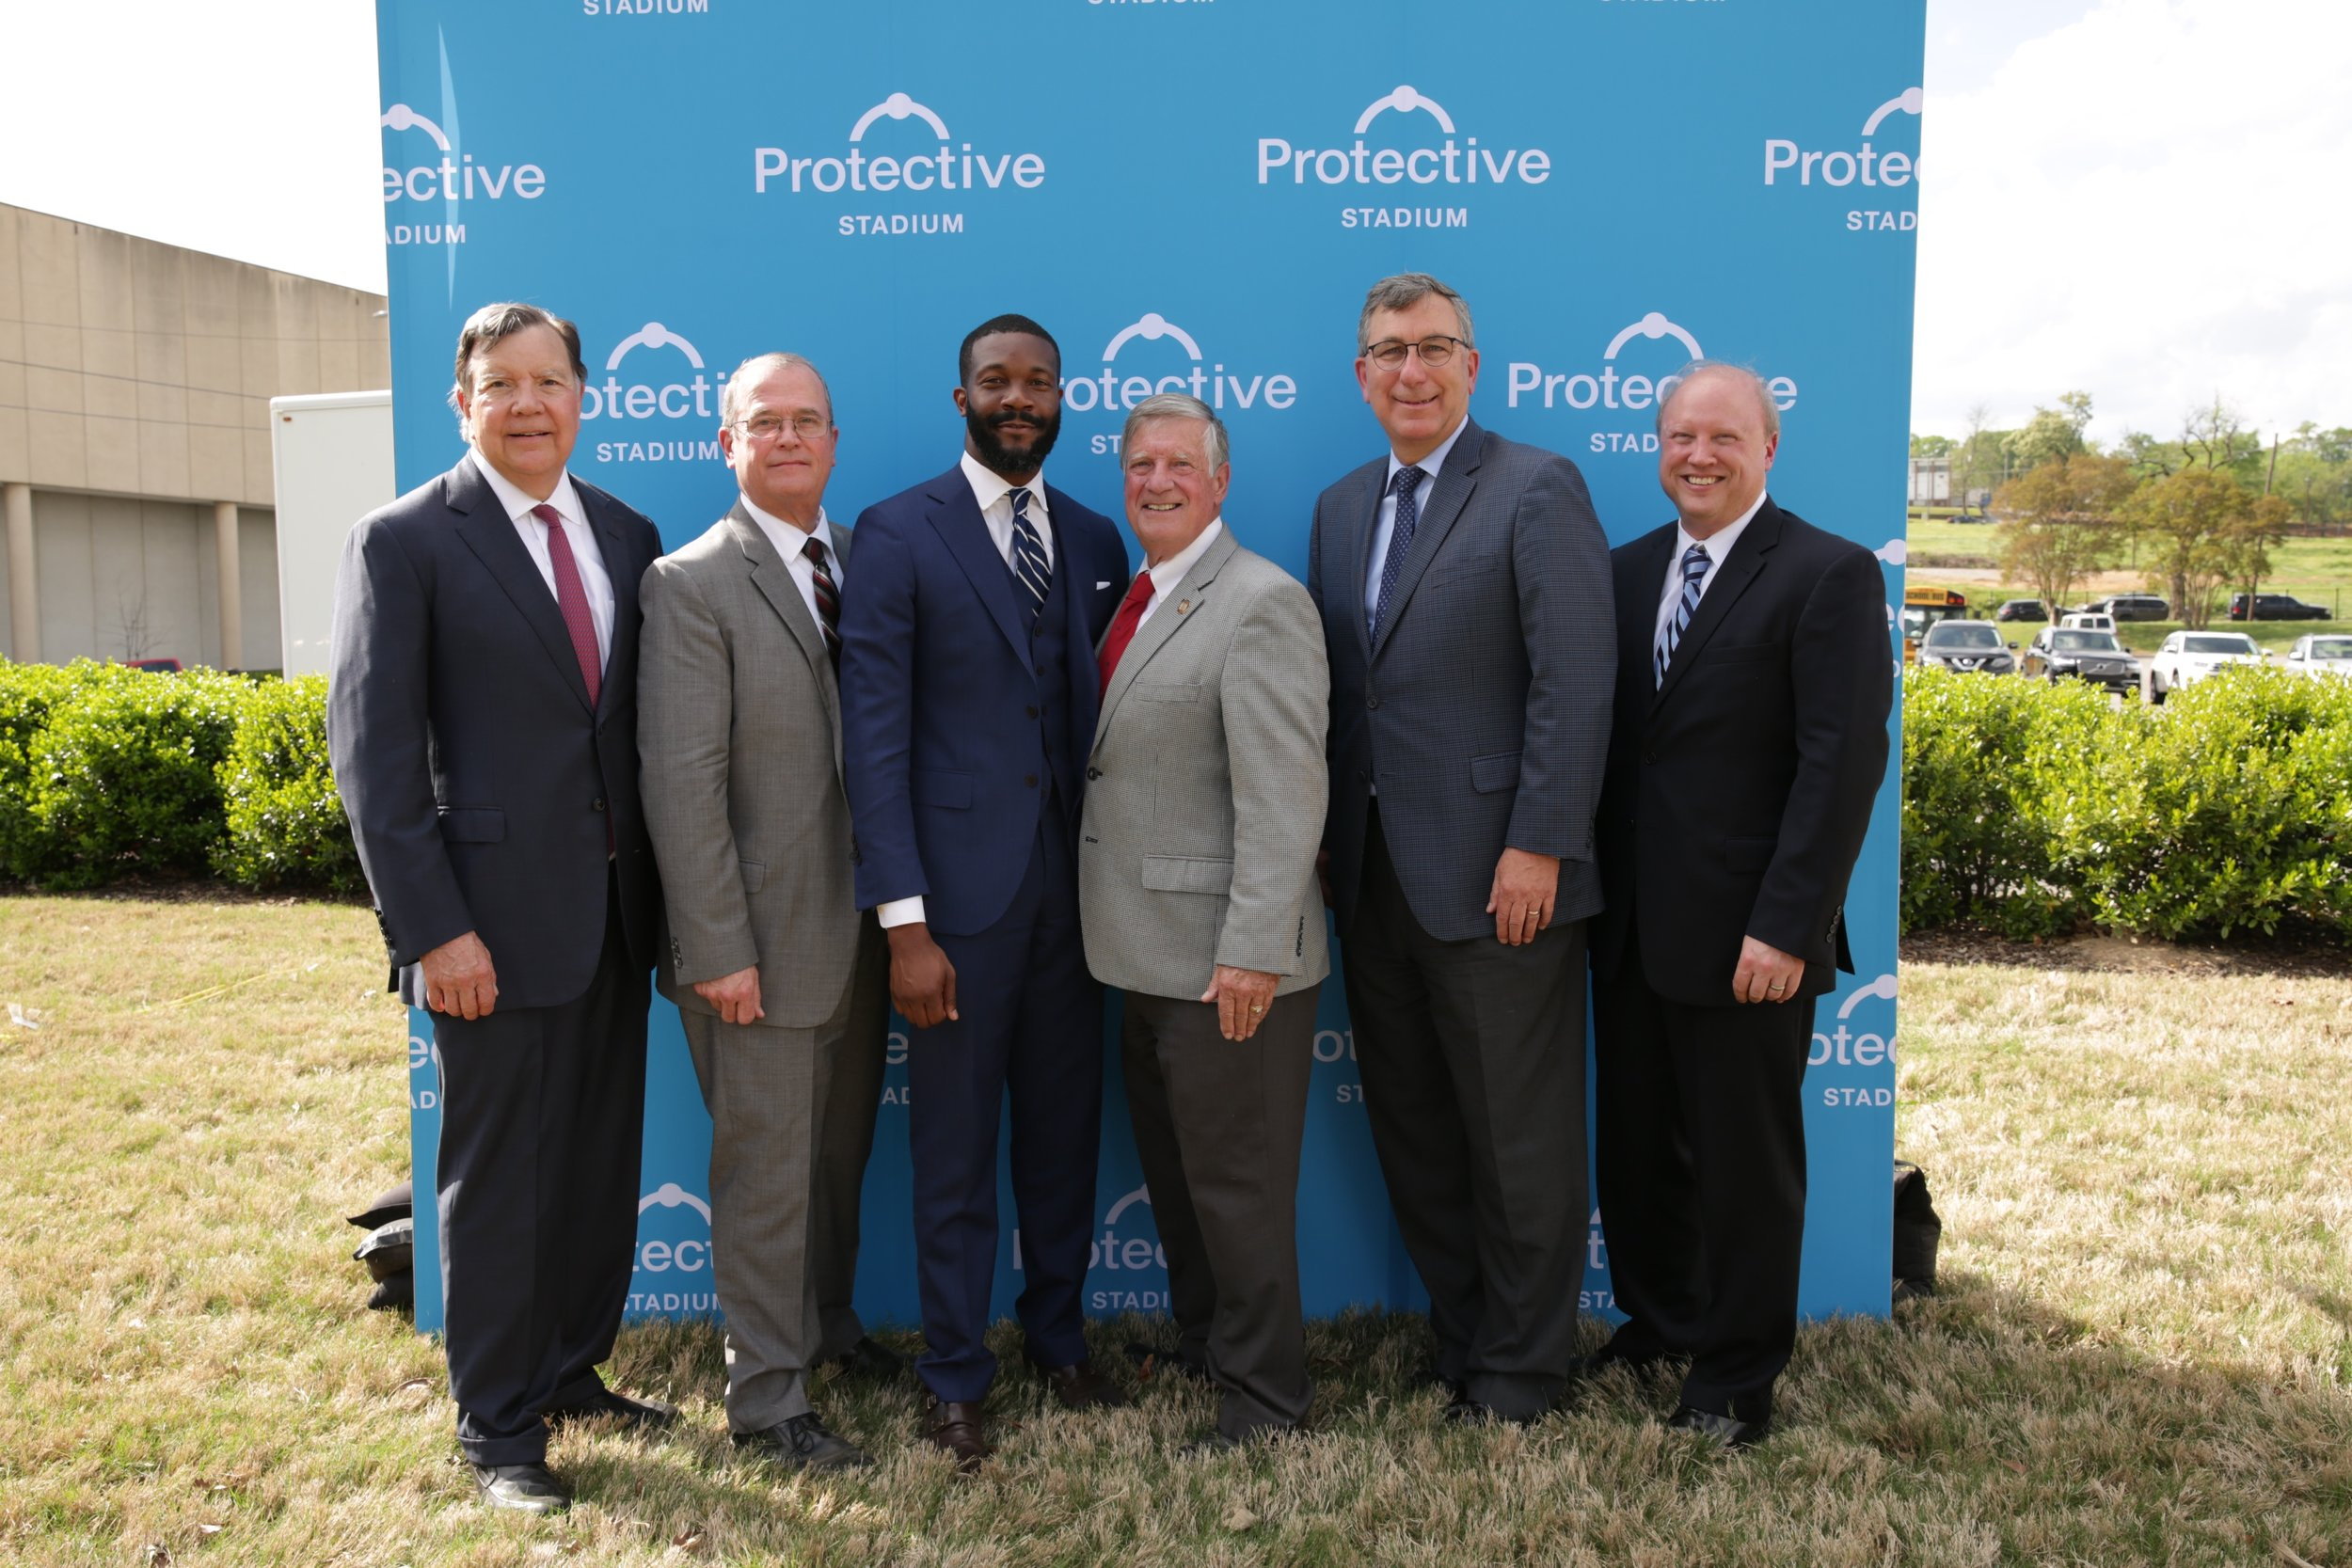 Speakers during Protective Stadium Naming Announcement on 4-11-19 .jpg